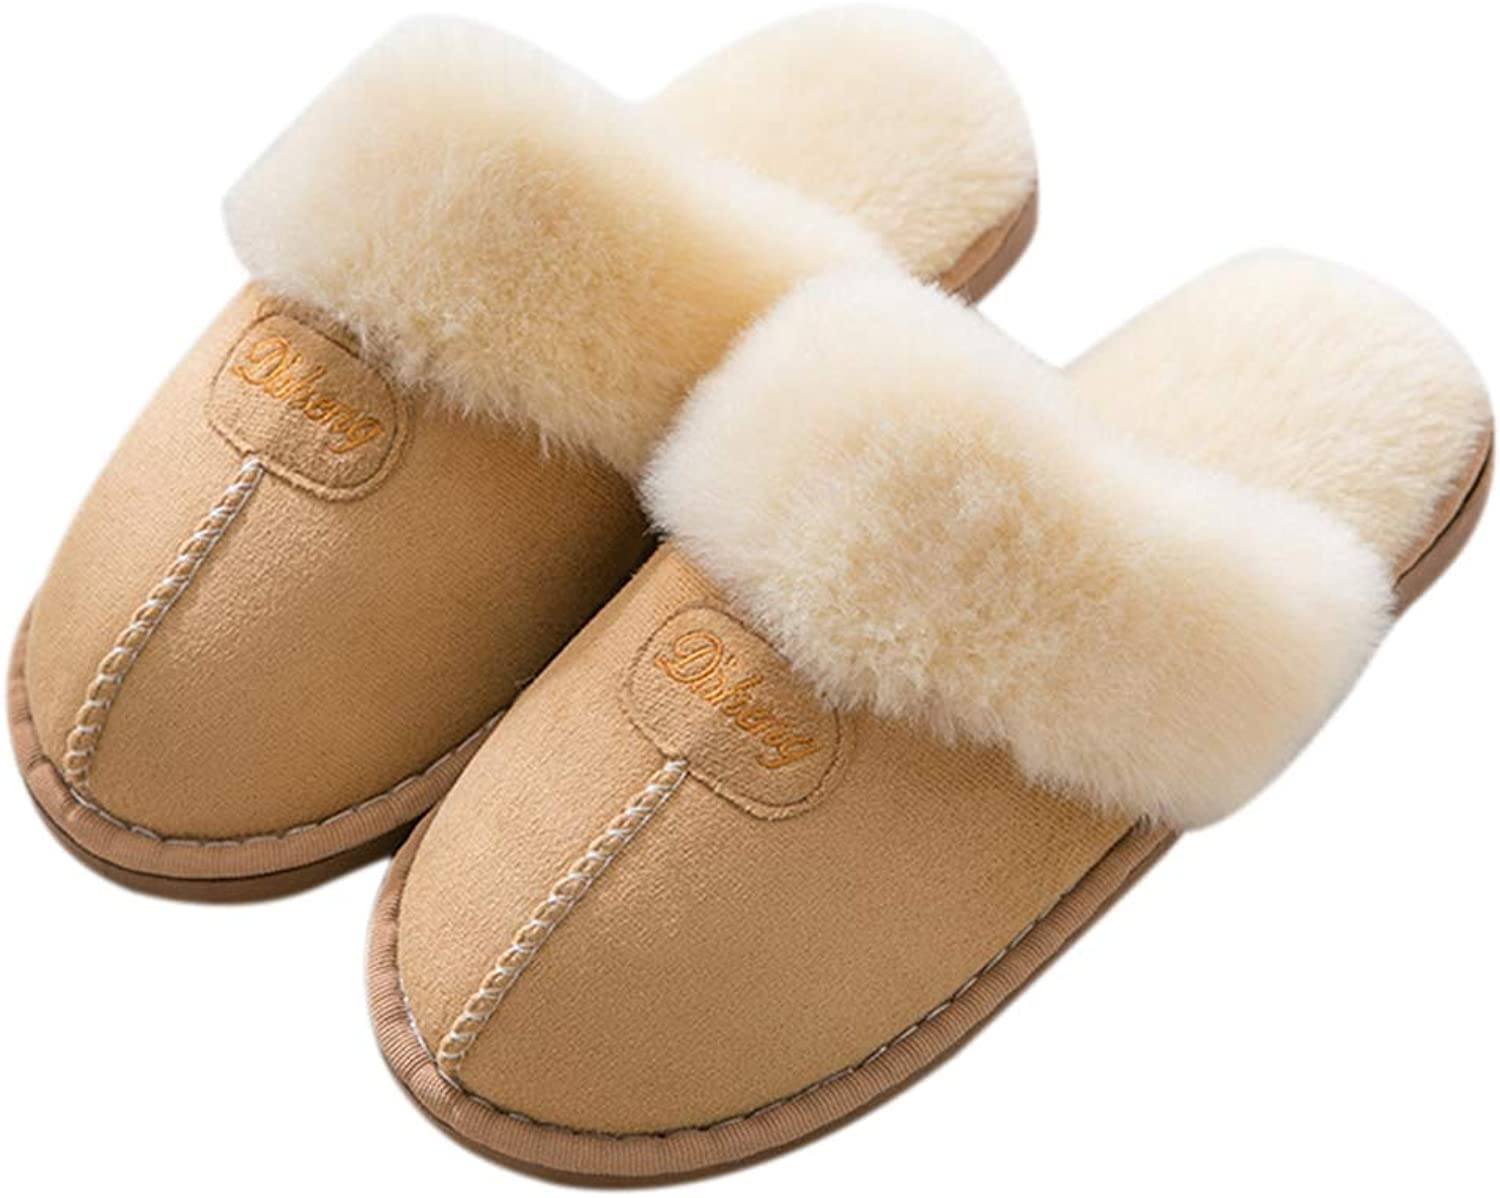 Fendou Women House Slipper Fluffy Slip On Memory Foam Warm shoes